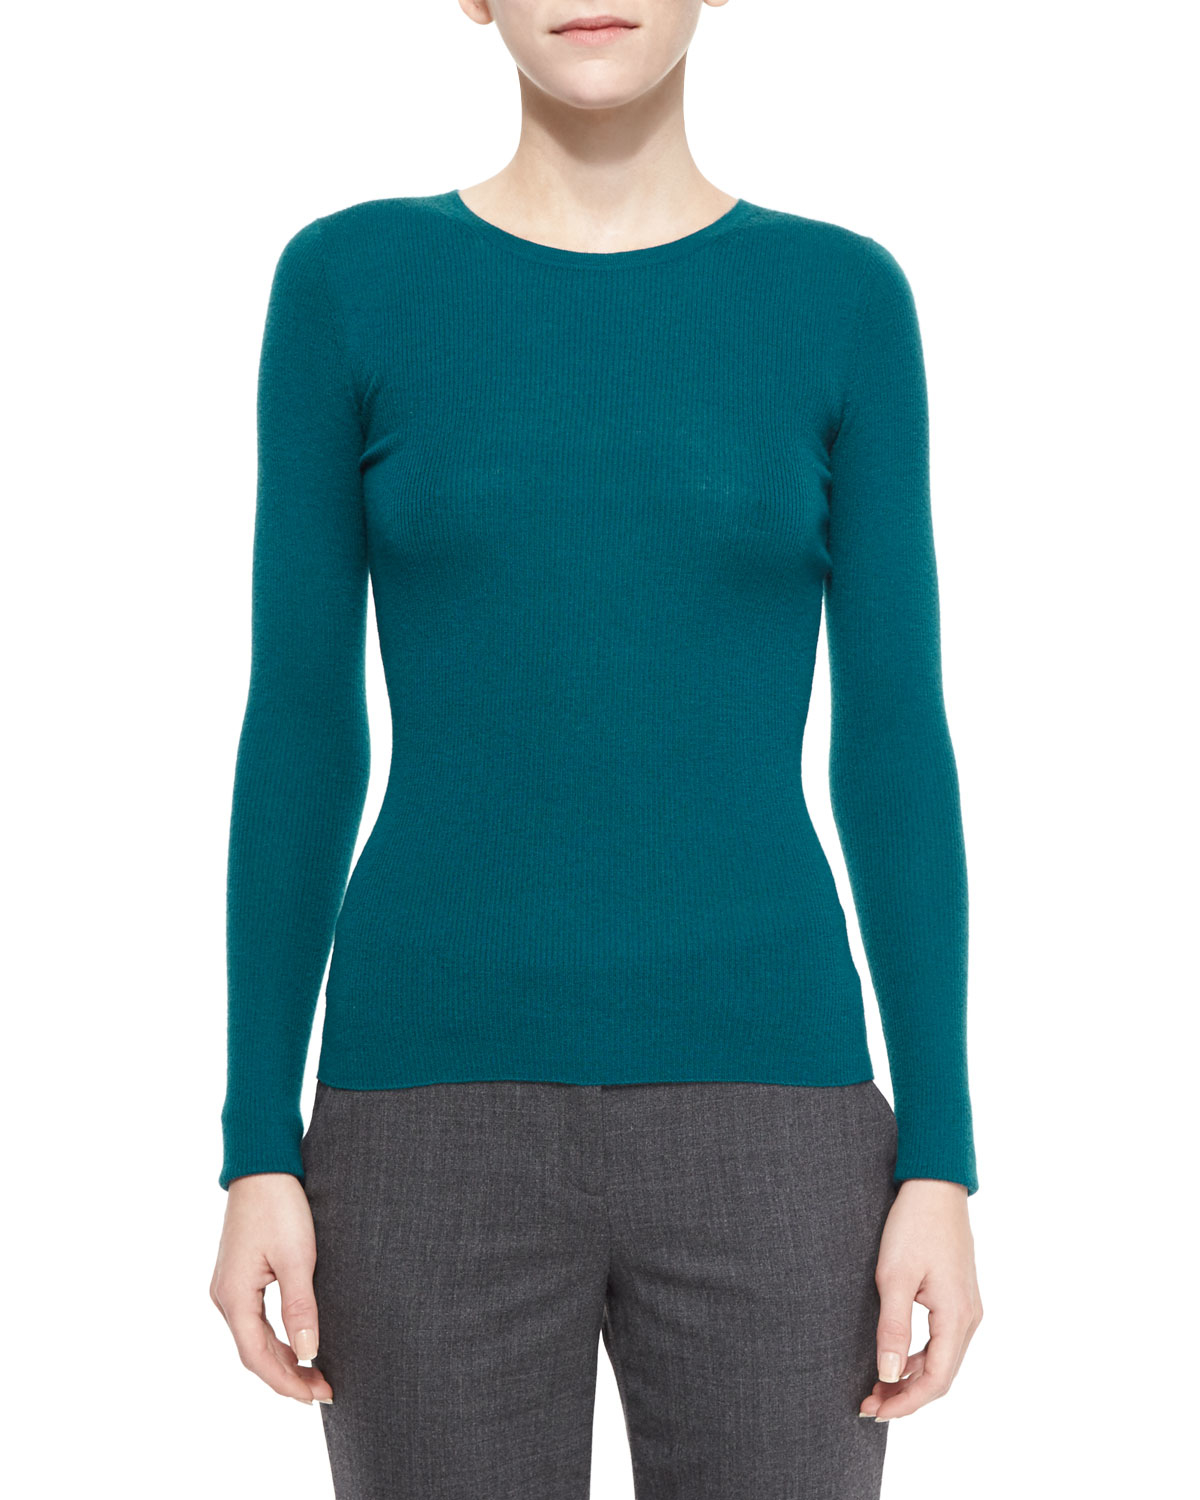 michael kors long sleeve ribbed cashmere sweater in green peacock save 74 lyst. Black Bedroom Furniture Sets. Home Design Ideas